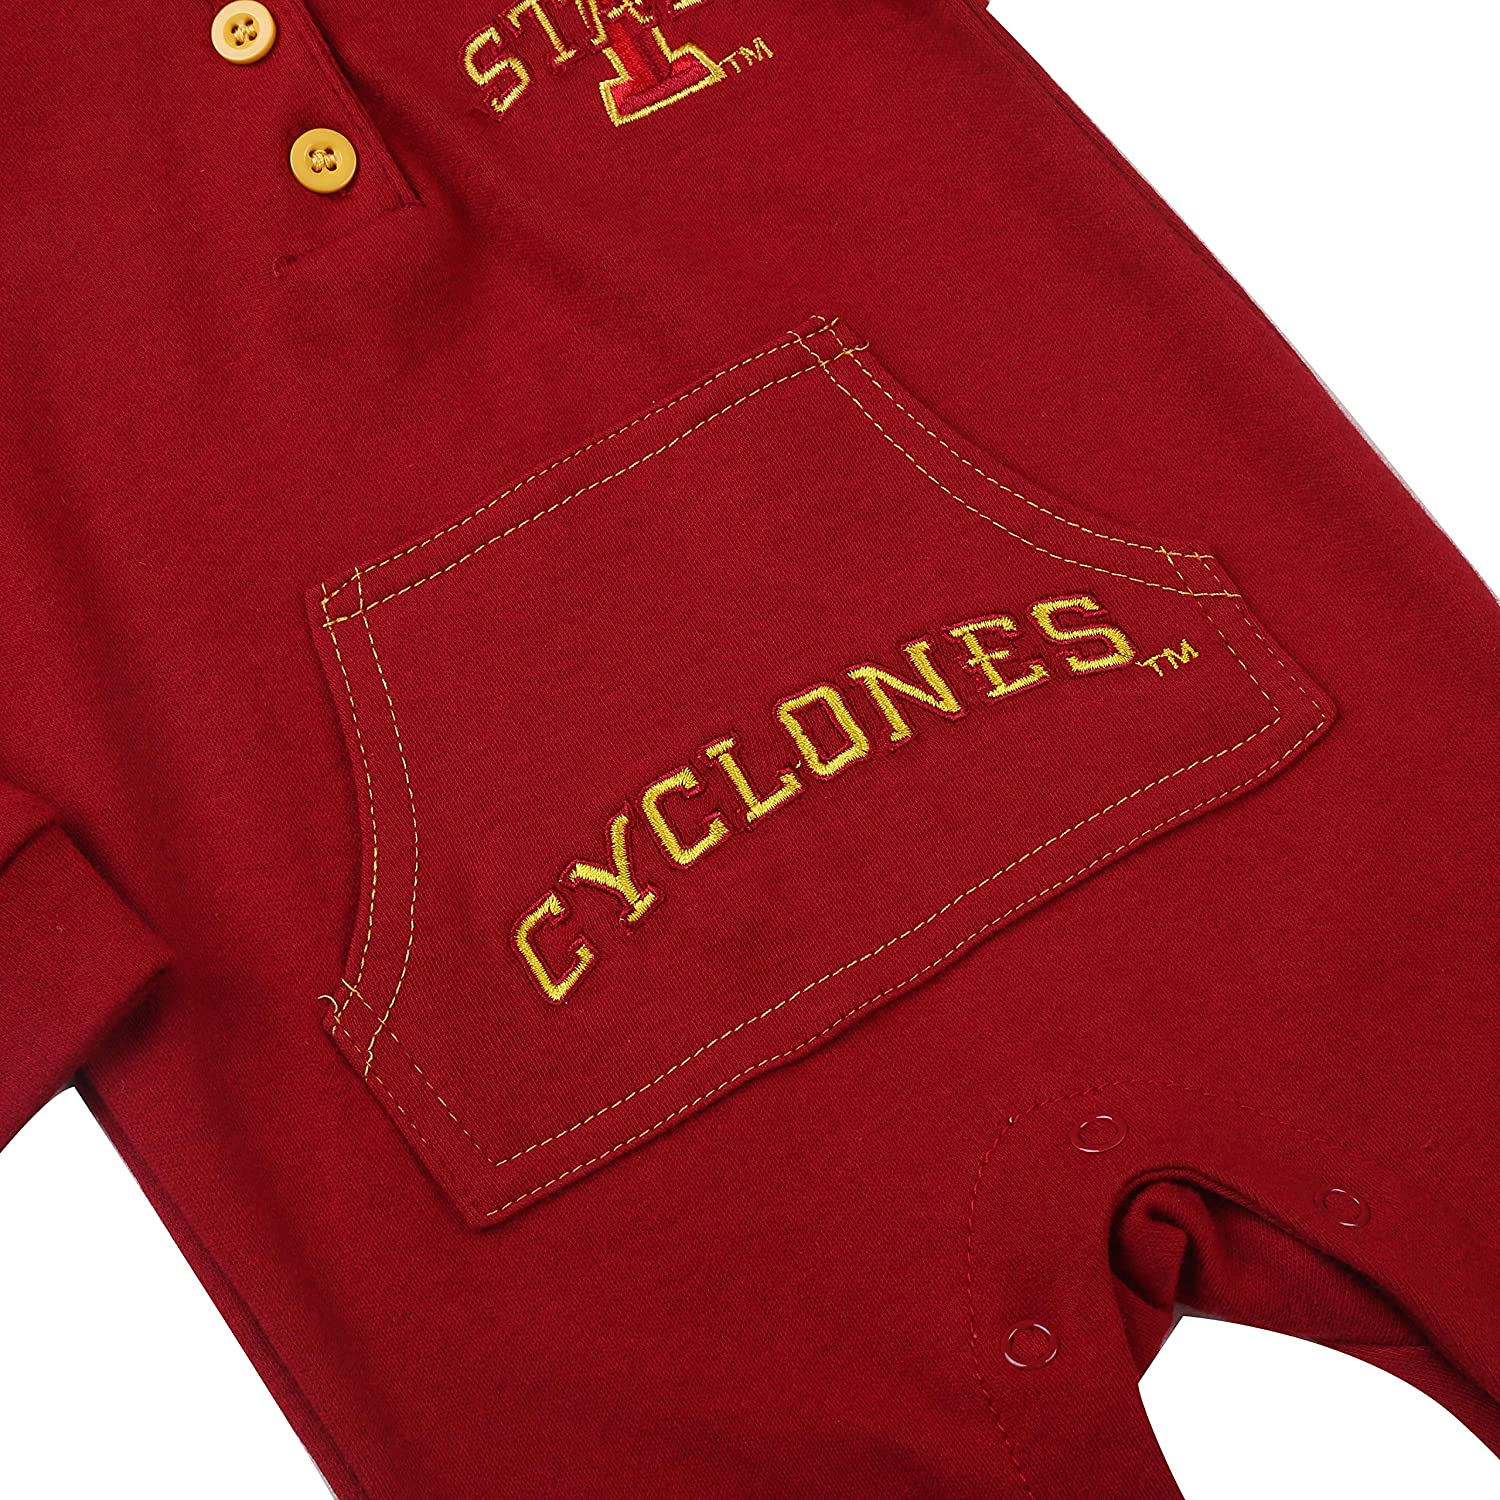 Fast Asleep Pjs Iowa State Cyclones Baby and Toddler Hooded